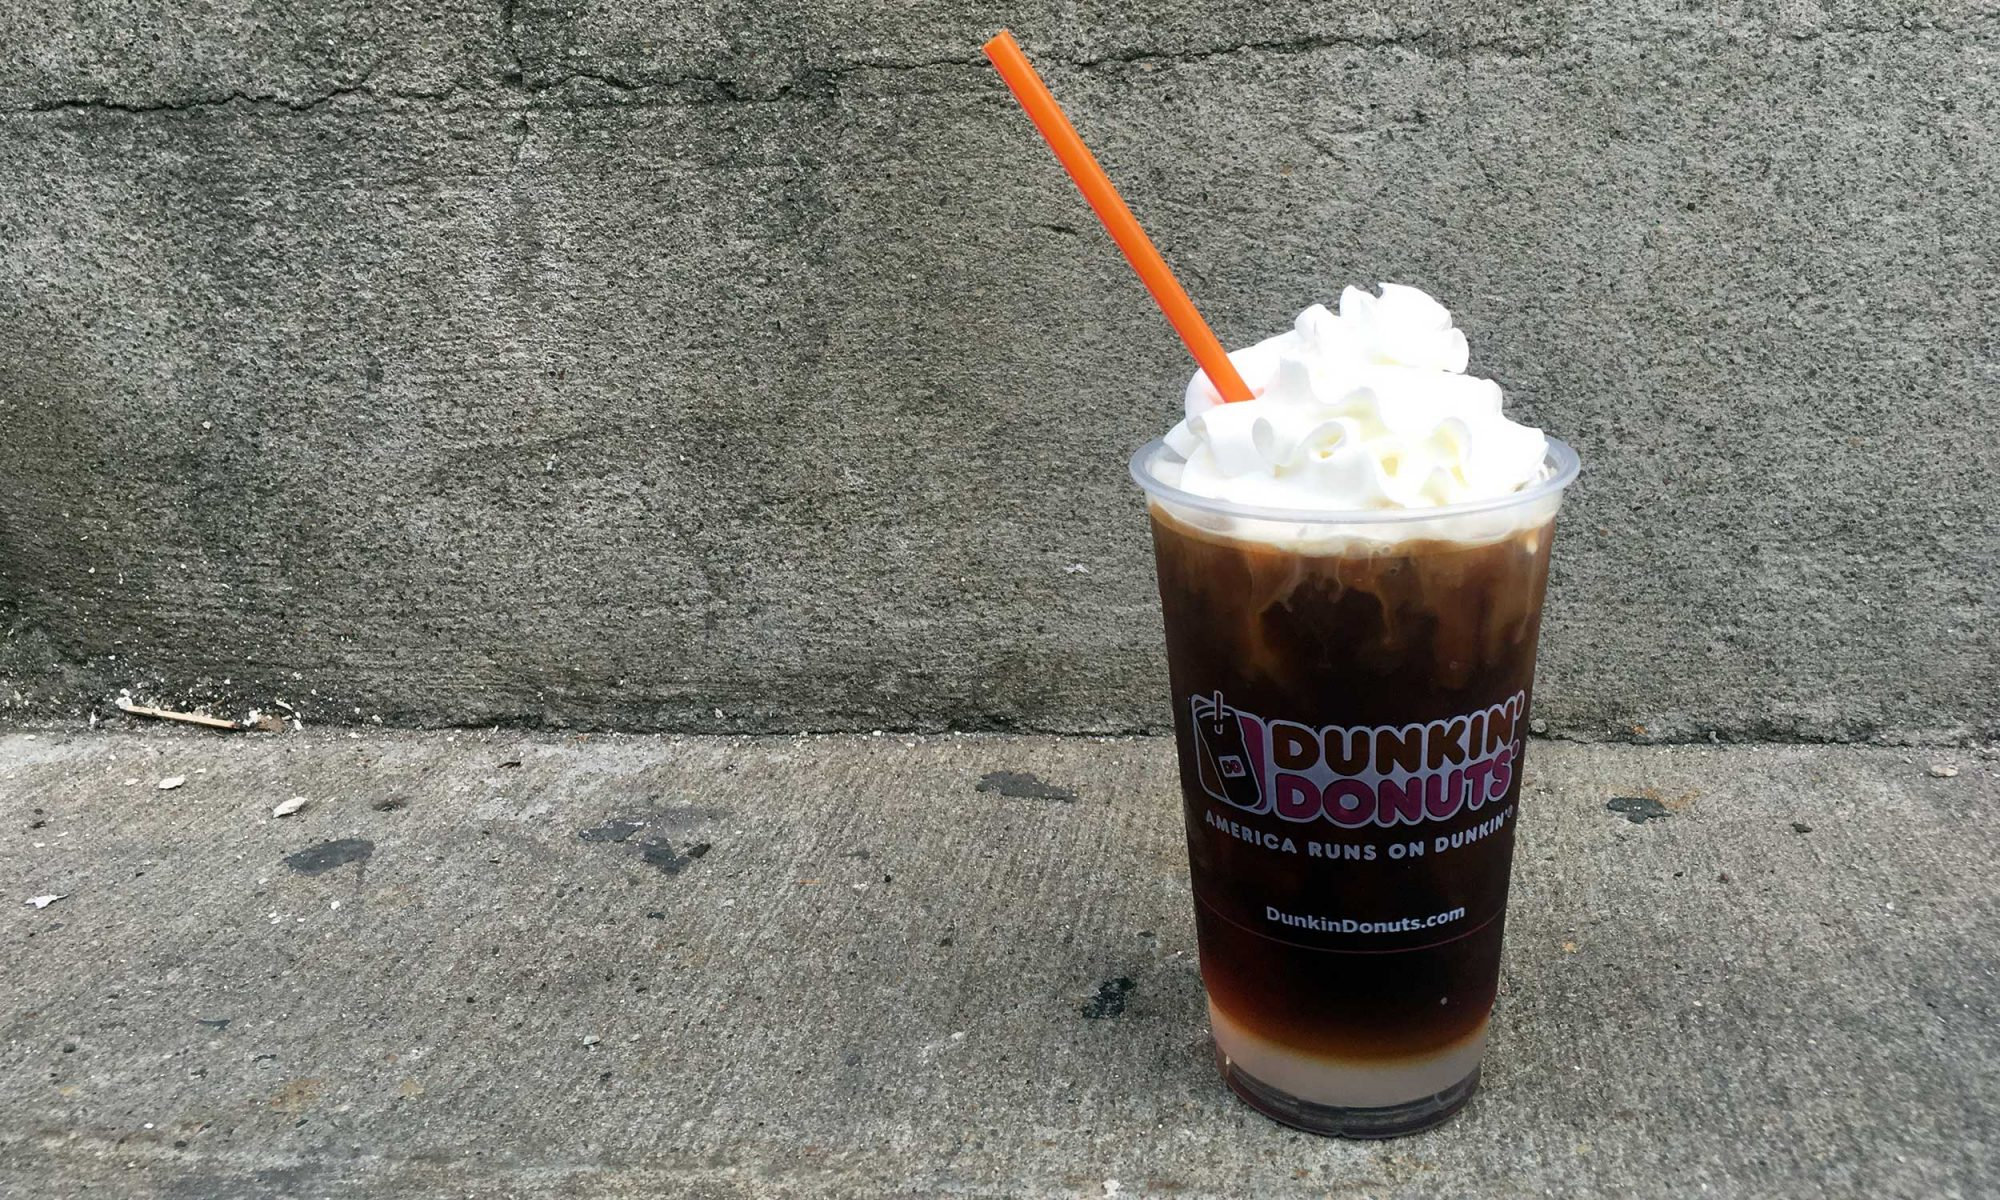 EC: I Tasted Dunkin' Donuts New Sweet and Salted Cold Brew Coffee